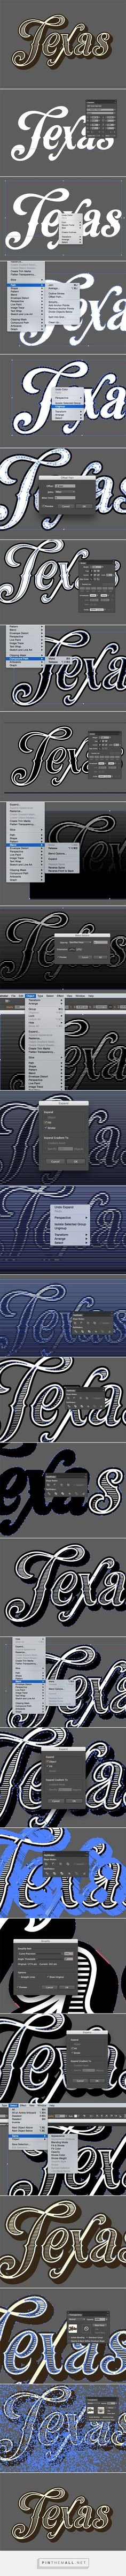 "How To Create a Vintage Text Effect in Illustrator - created via <a href=""http://pinthemall.net"" rel=""nofollow"" target=""_blank"">pinthemall.net</a>"